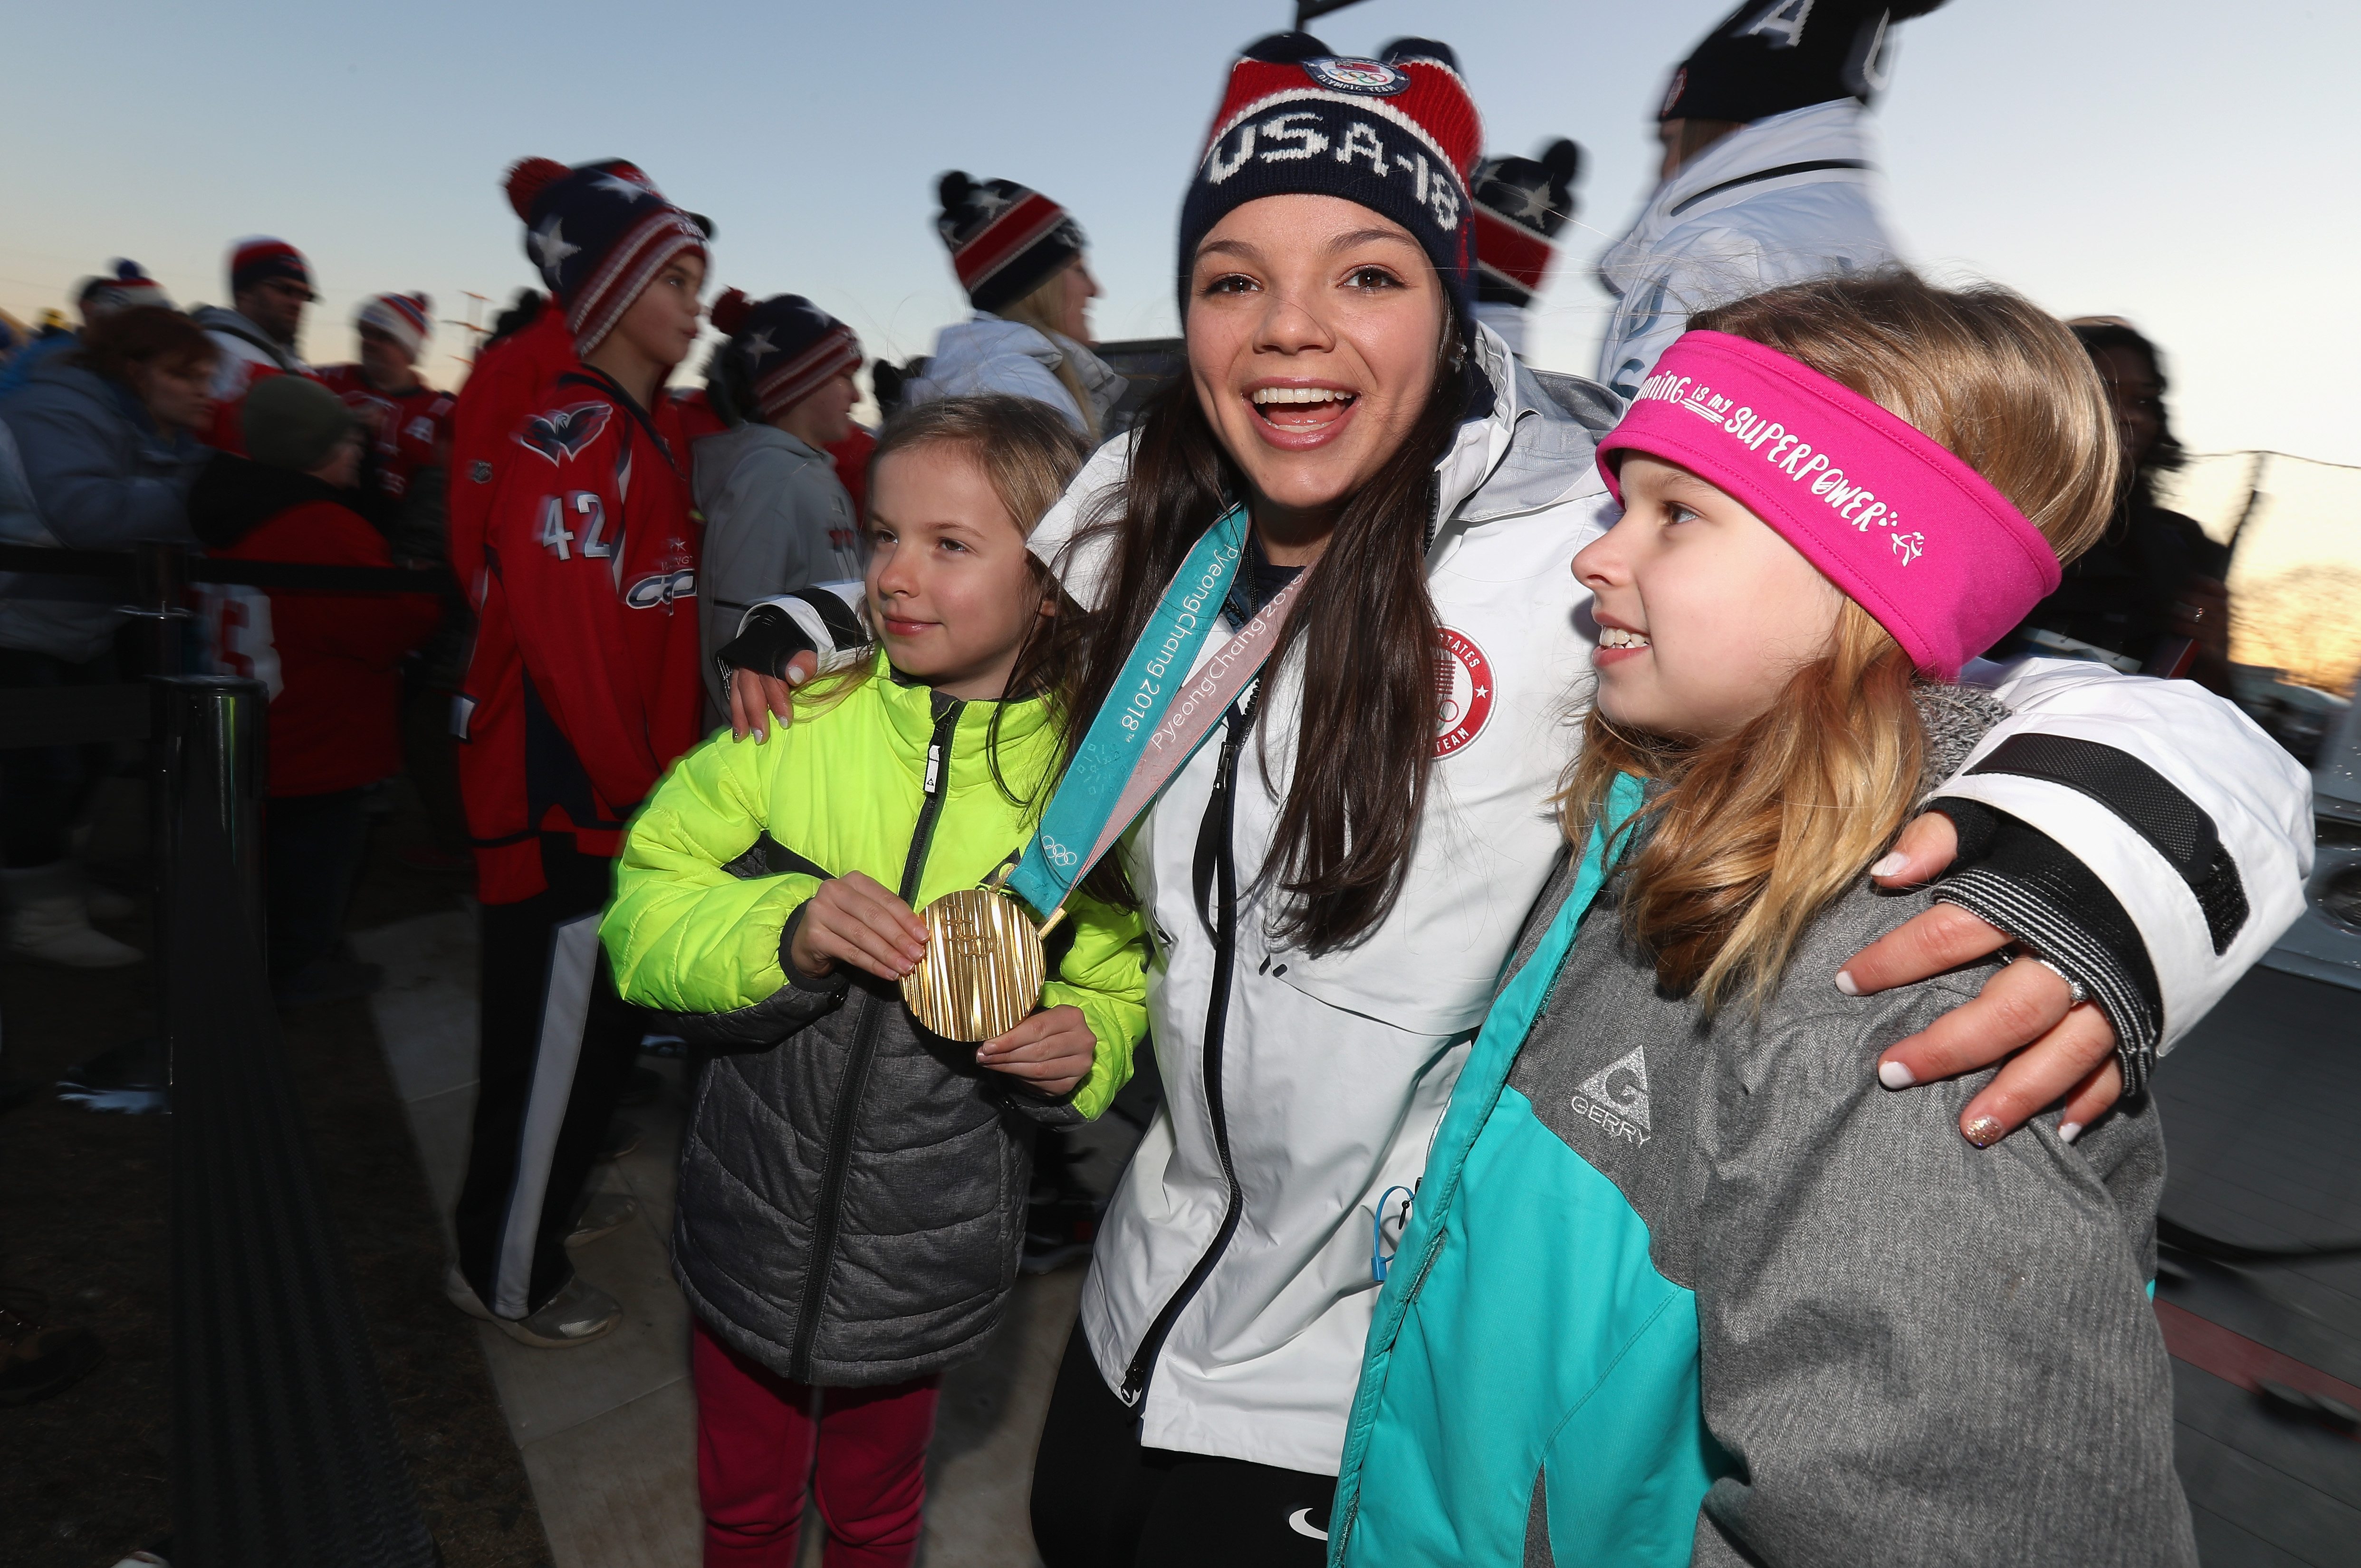 Cayla Barnes of the United States Women's Ice Hockey Team poses with hockey fans during the 2018 Coors Light NHL Stadium Series game between the Toronto Maple Leafs and the Washington Capitals at the Navy-Marine Corps Memorial Stadium on March 3, 2018 in Annapolis, Maryland.